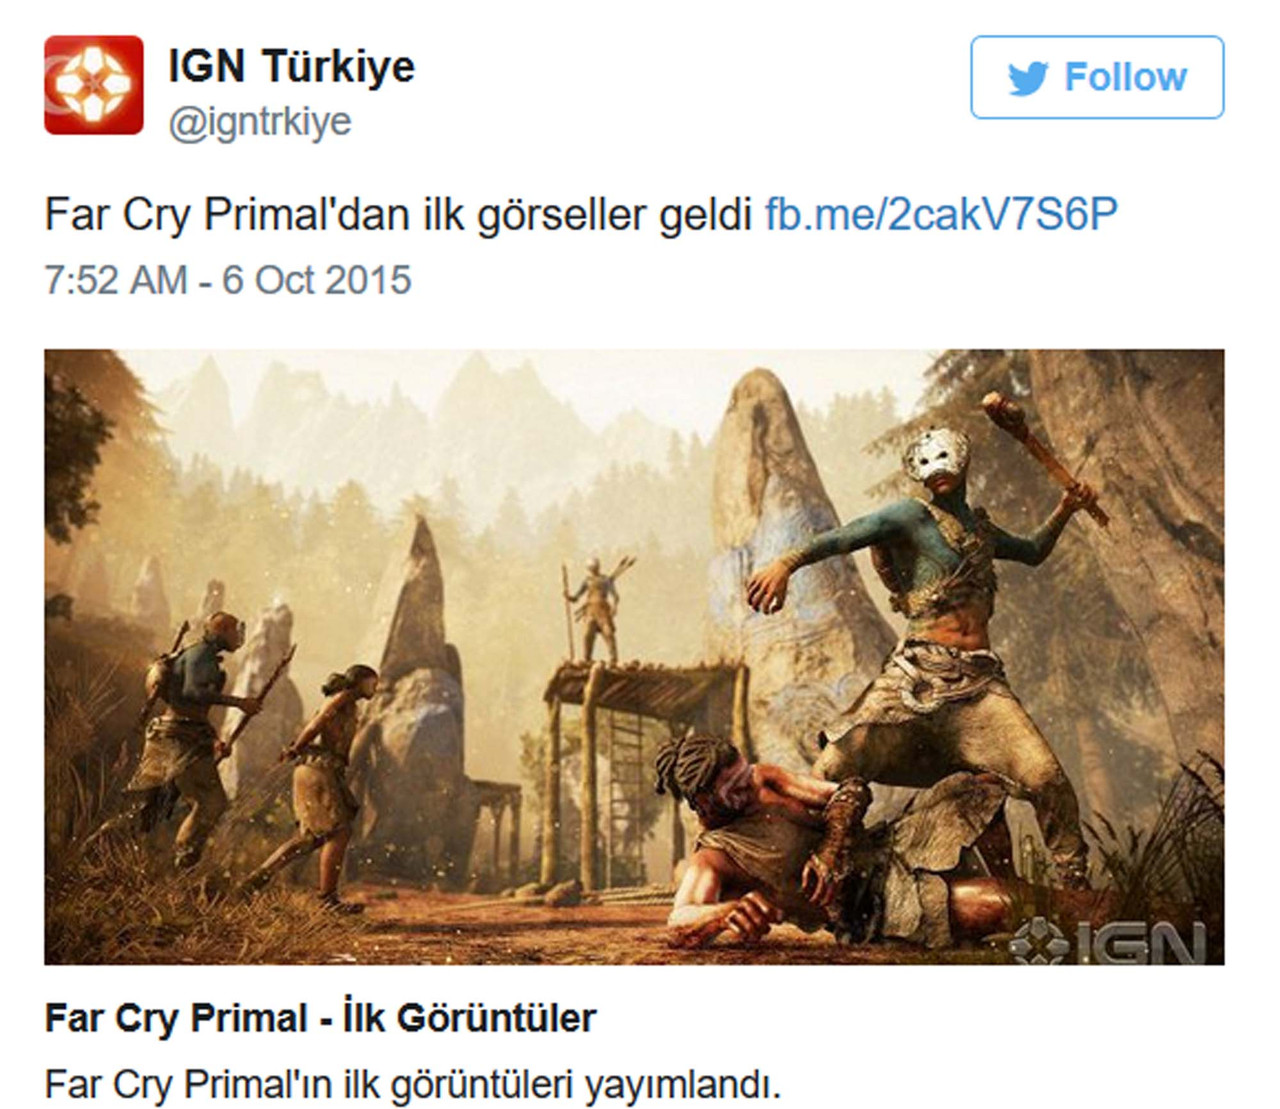 Ice Age Adventure Far Cry Primal Leaked Before Reveal Gameplanet New Zealand